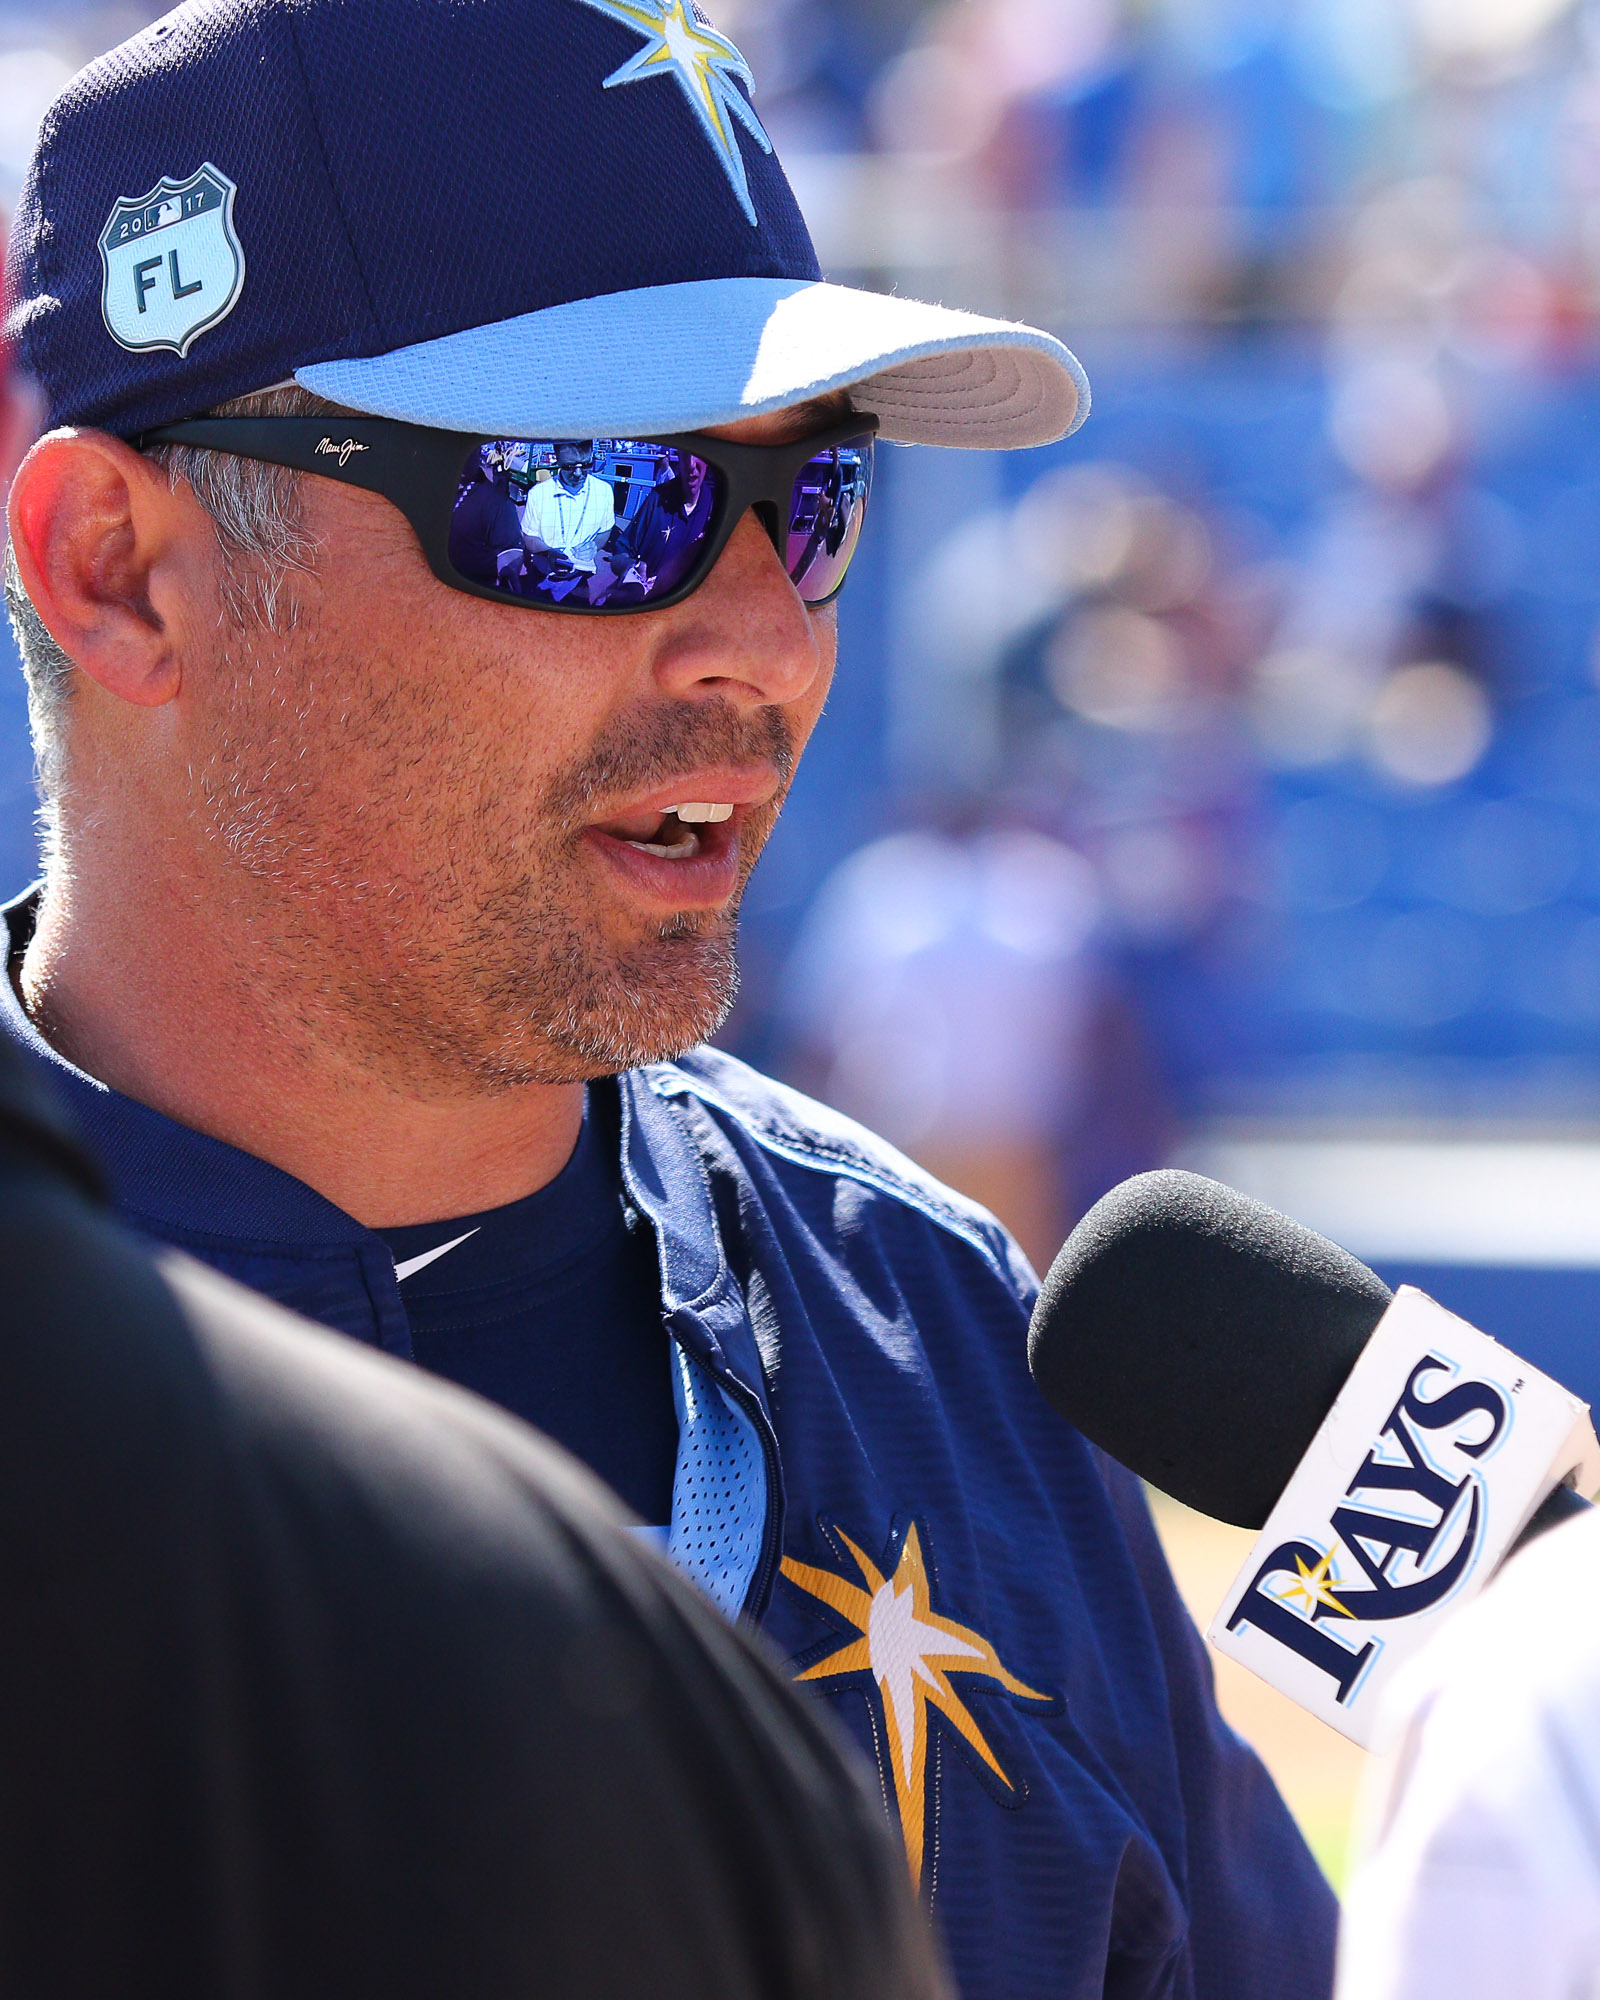 Cash already is second among Rays' managers. ANDREW J. KRAMER